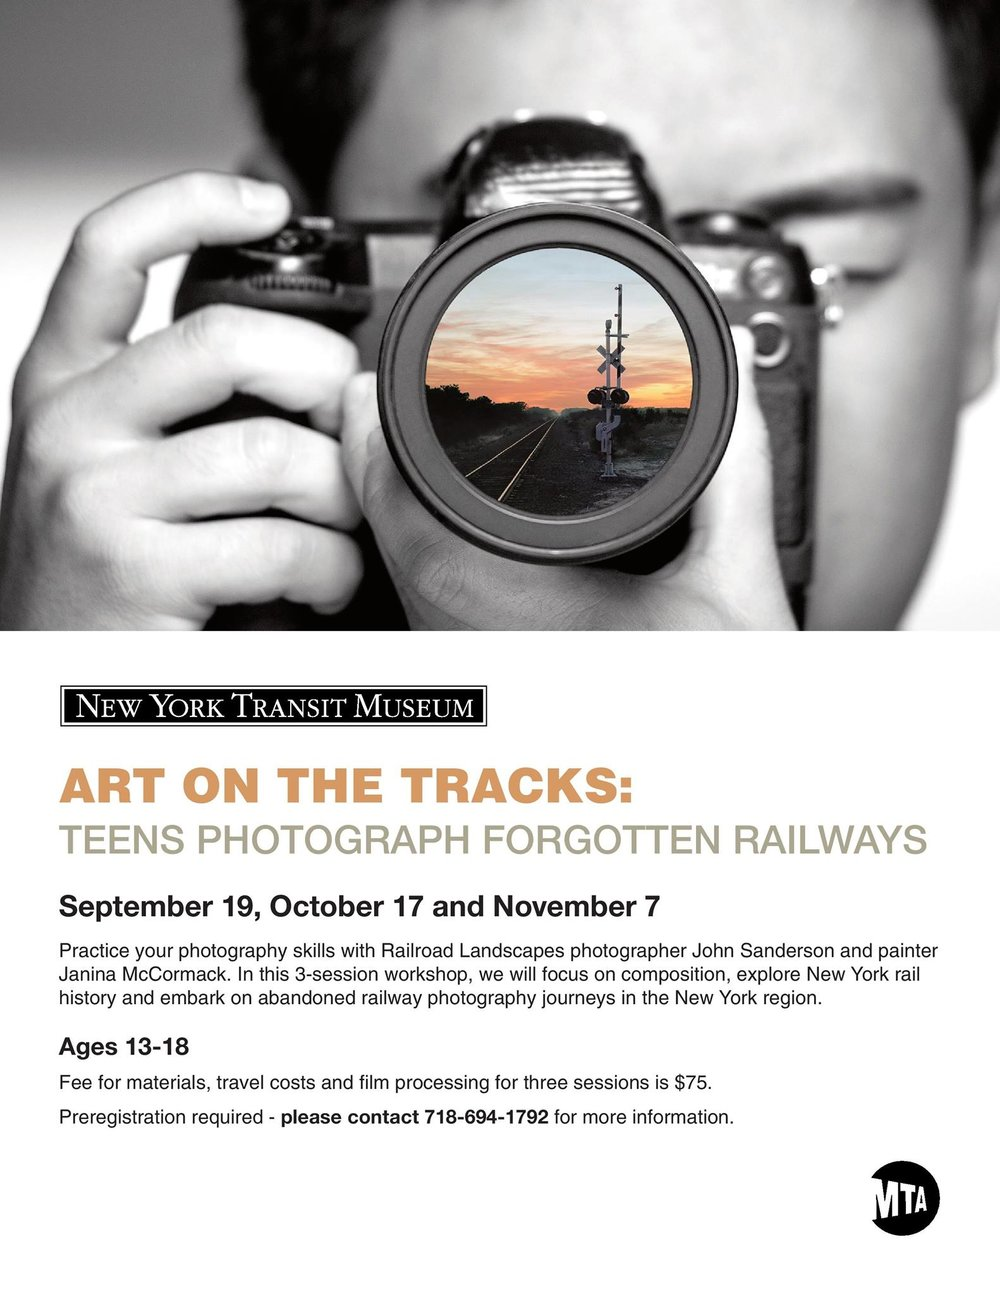 2015, 2016_Educator, Art on the Tracks, Teens Photograph the End of the Line_New York Transit Museum, Brooklyn, NY_flyer_2.jpg